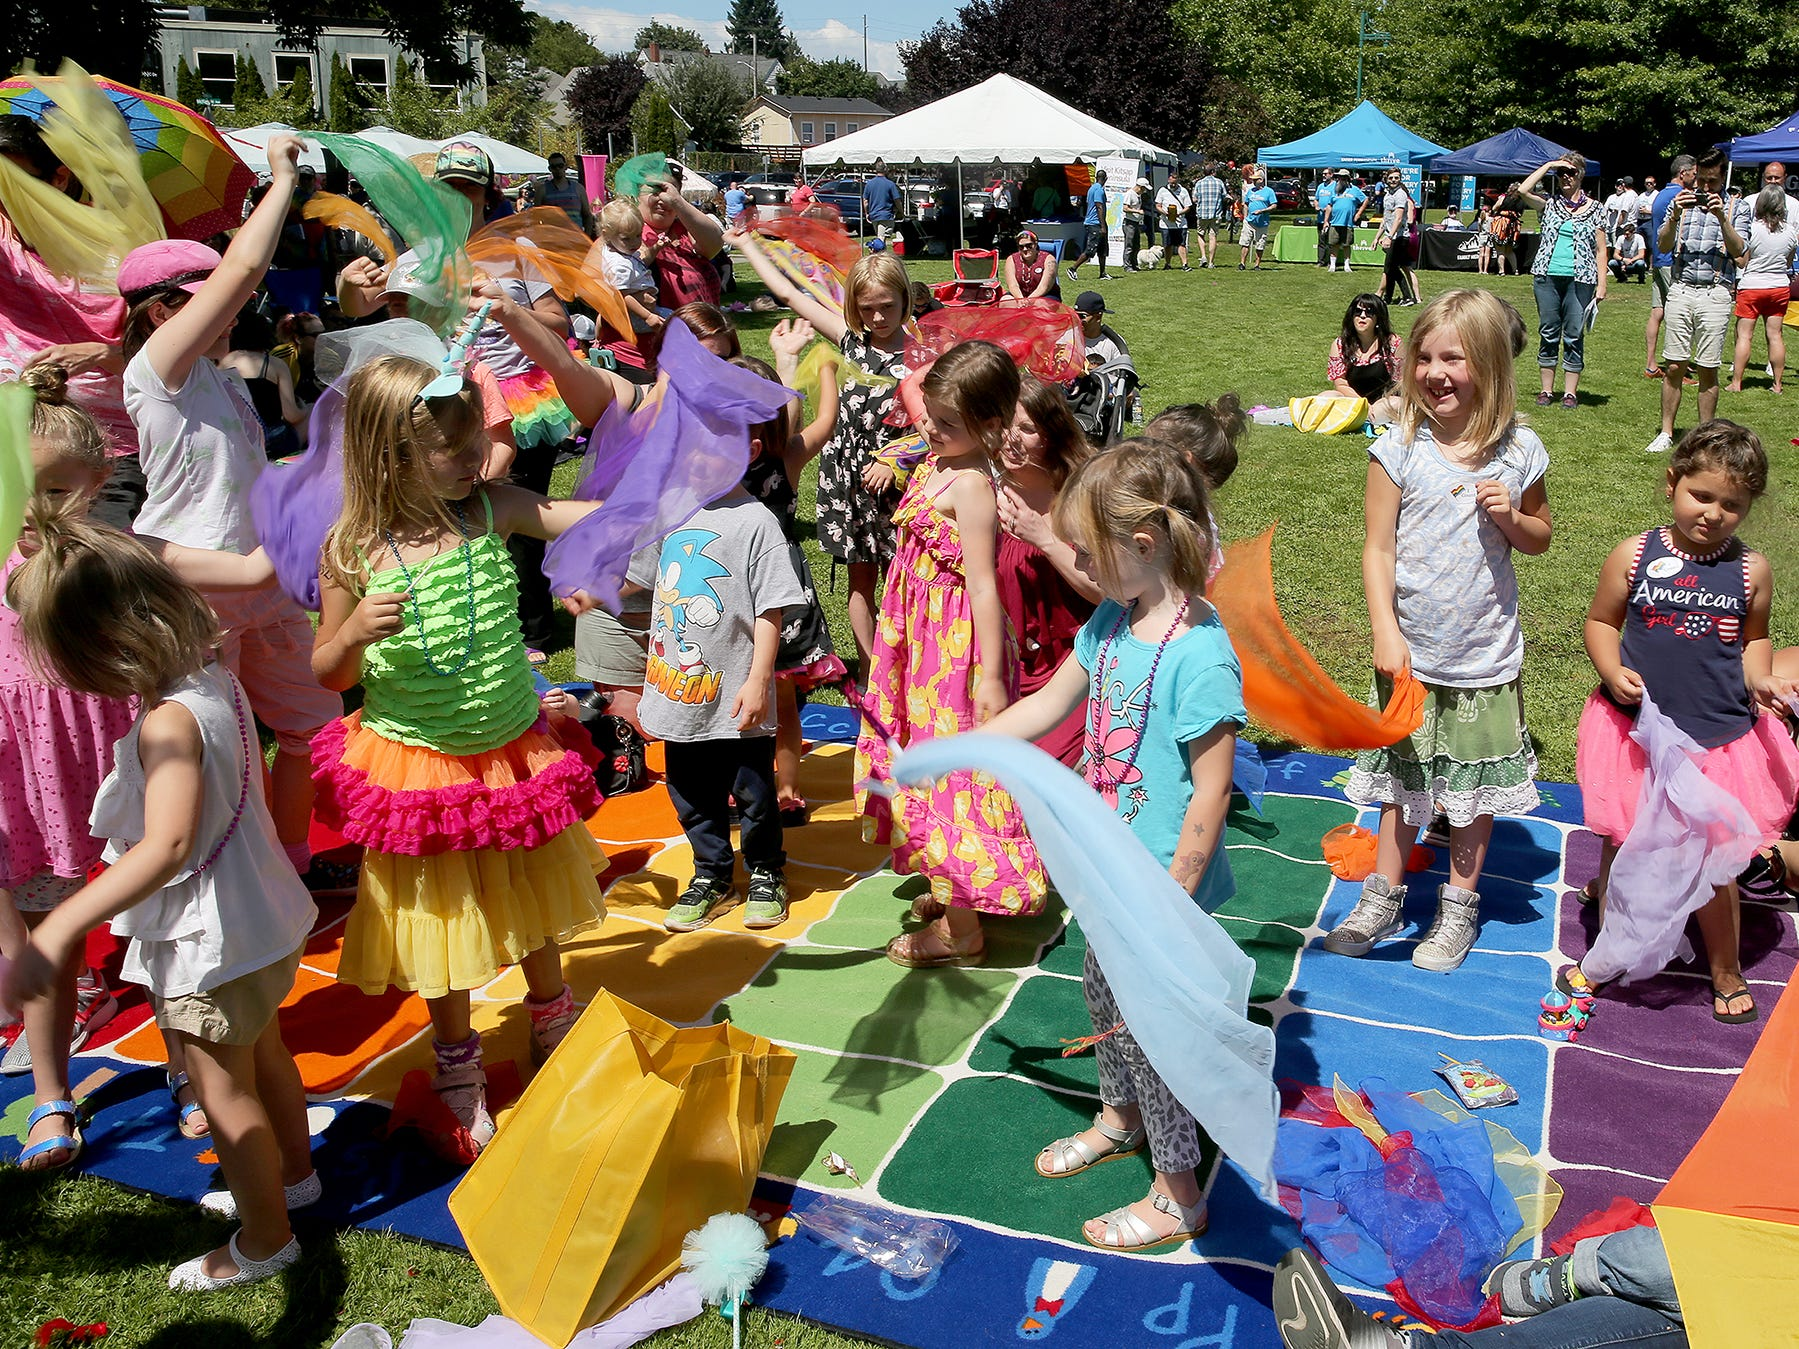 The Kitsap Pride Festival on Saturday July, 21, 2018 at Evergreen-Rotary Park in Bremerton.